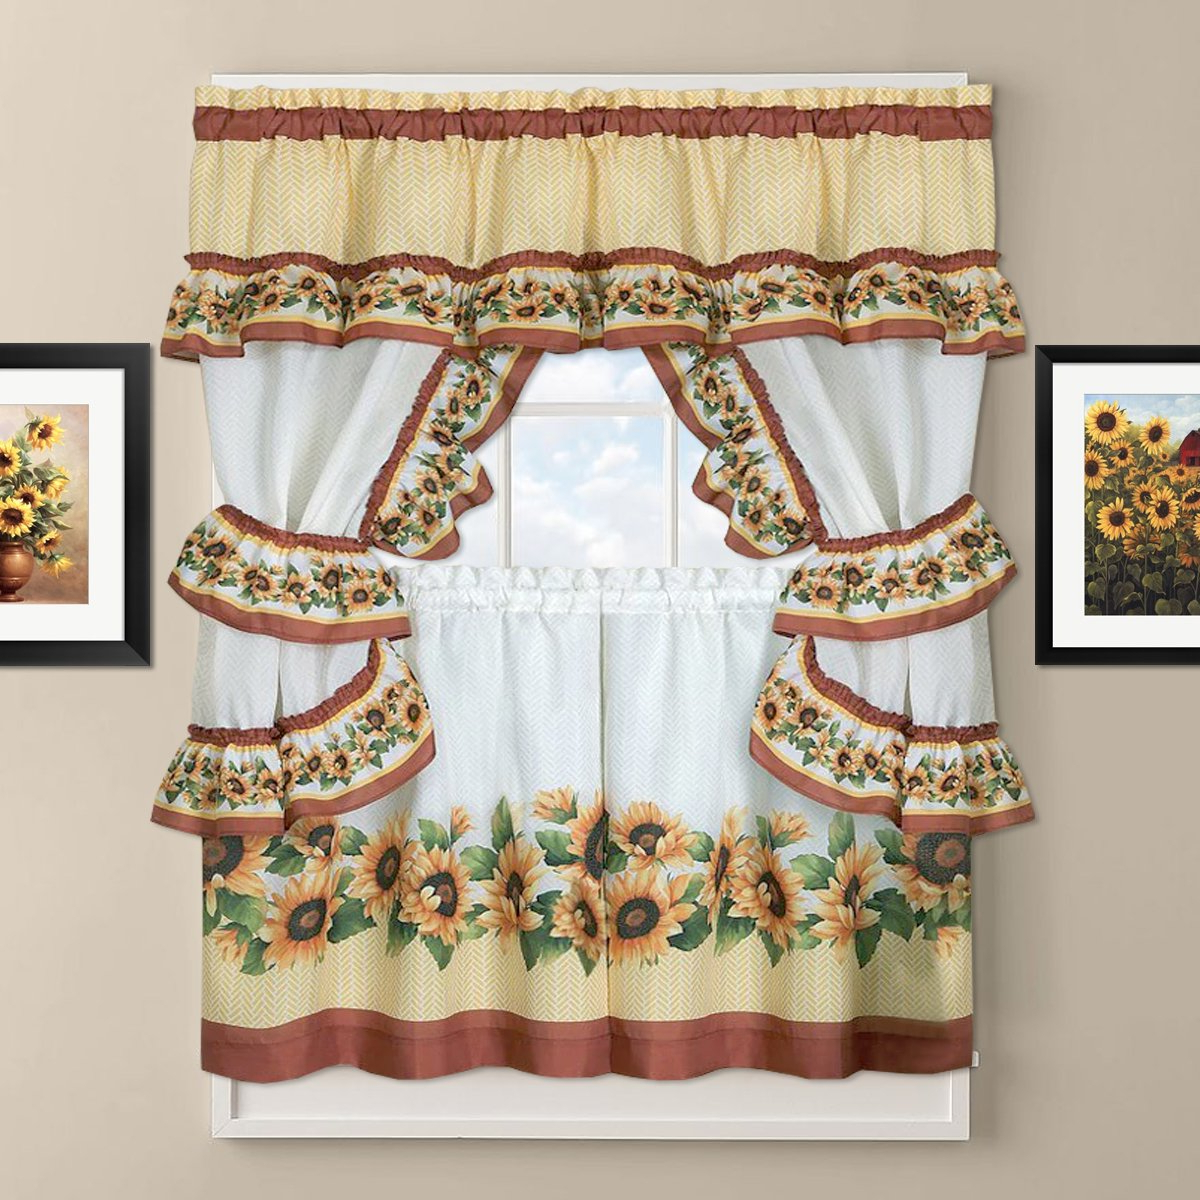 "Sweet Home Collection 5 Piece Kitchen Curtain Window Panel Set Printed Design With Tier, Swag, And Tiebacks, 24"", Burgundy Pertaining To Most Recently Released 5 Piece Burgundy Embroidered Cabernet Kitchen Curtain Sets (View 7 of 20)"